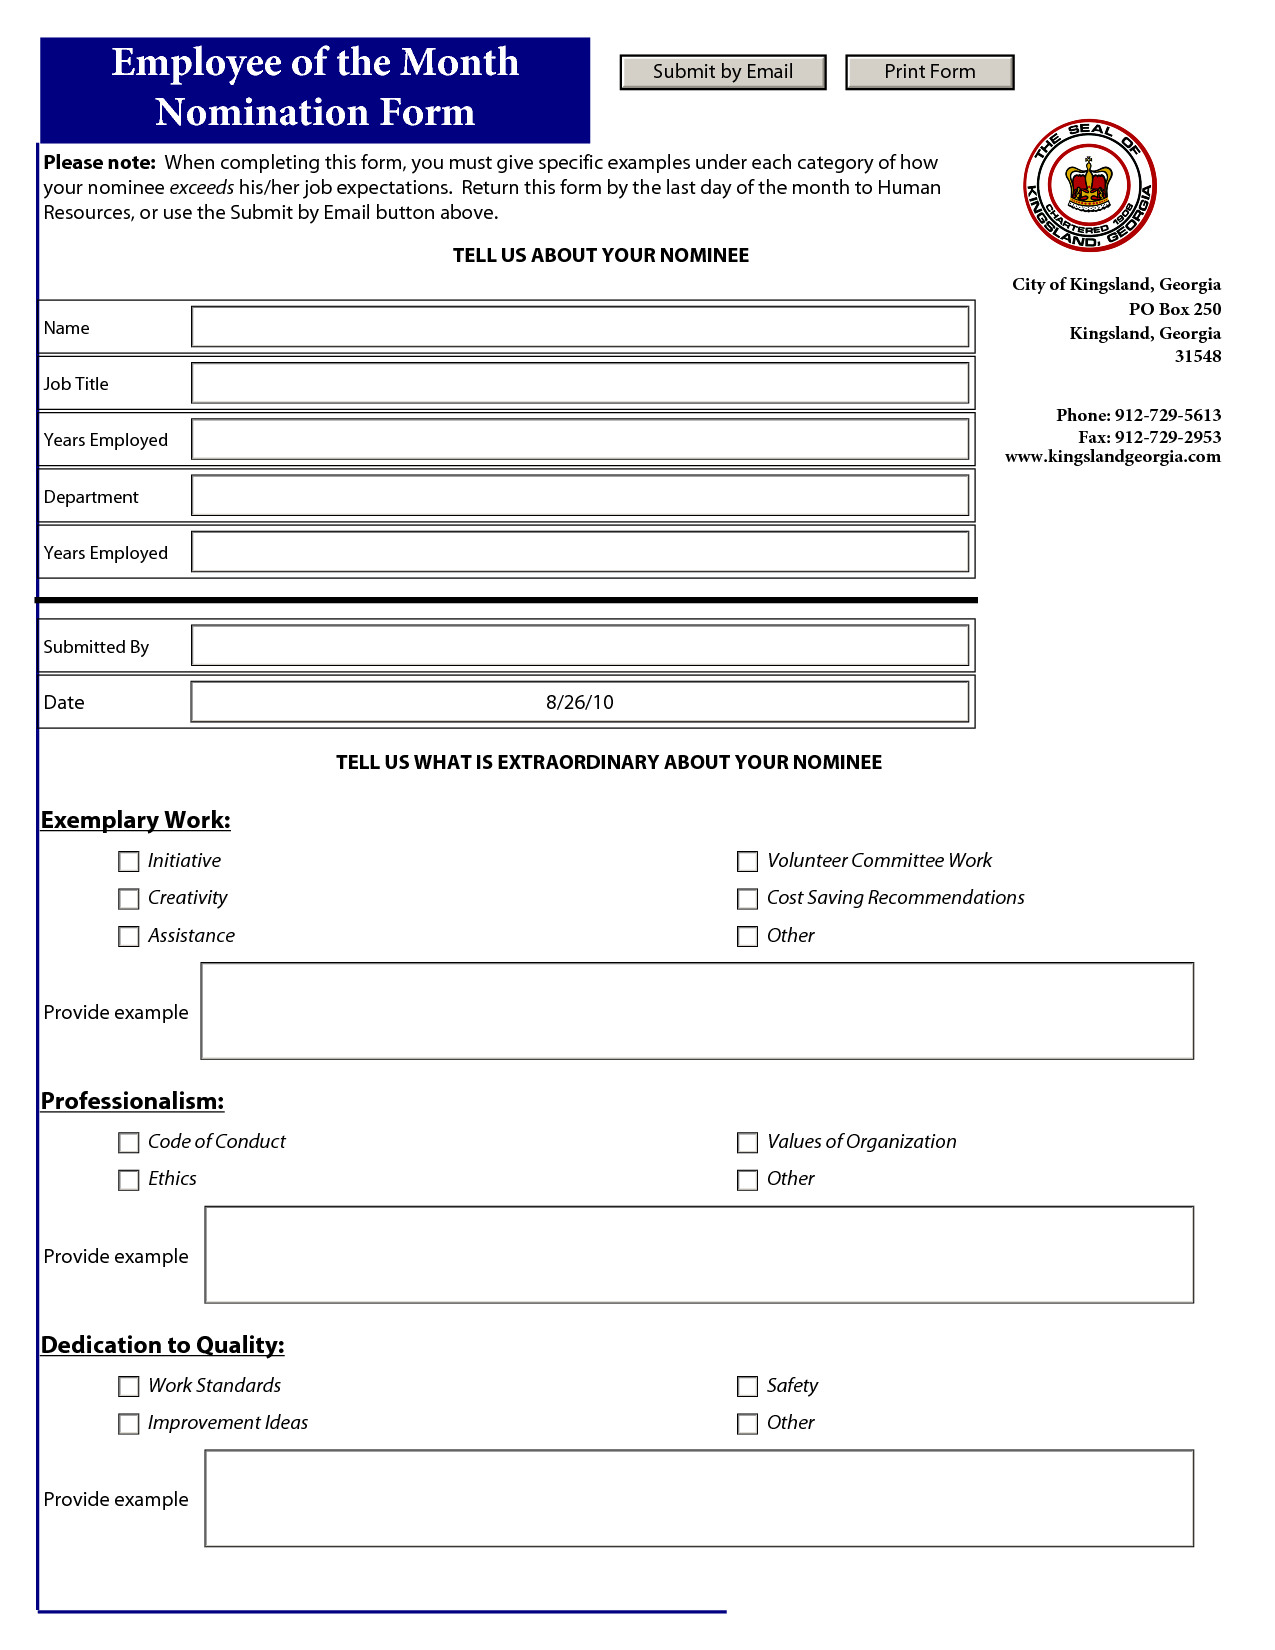 Employee of the Month Nomination Template - PDF | Auction 2014 ...